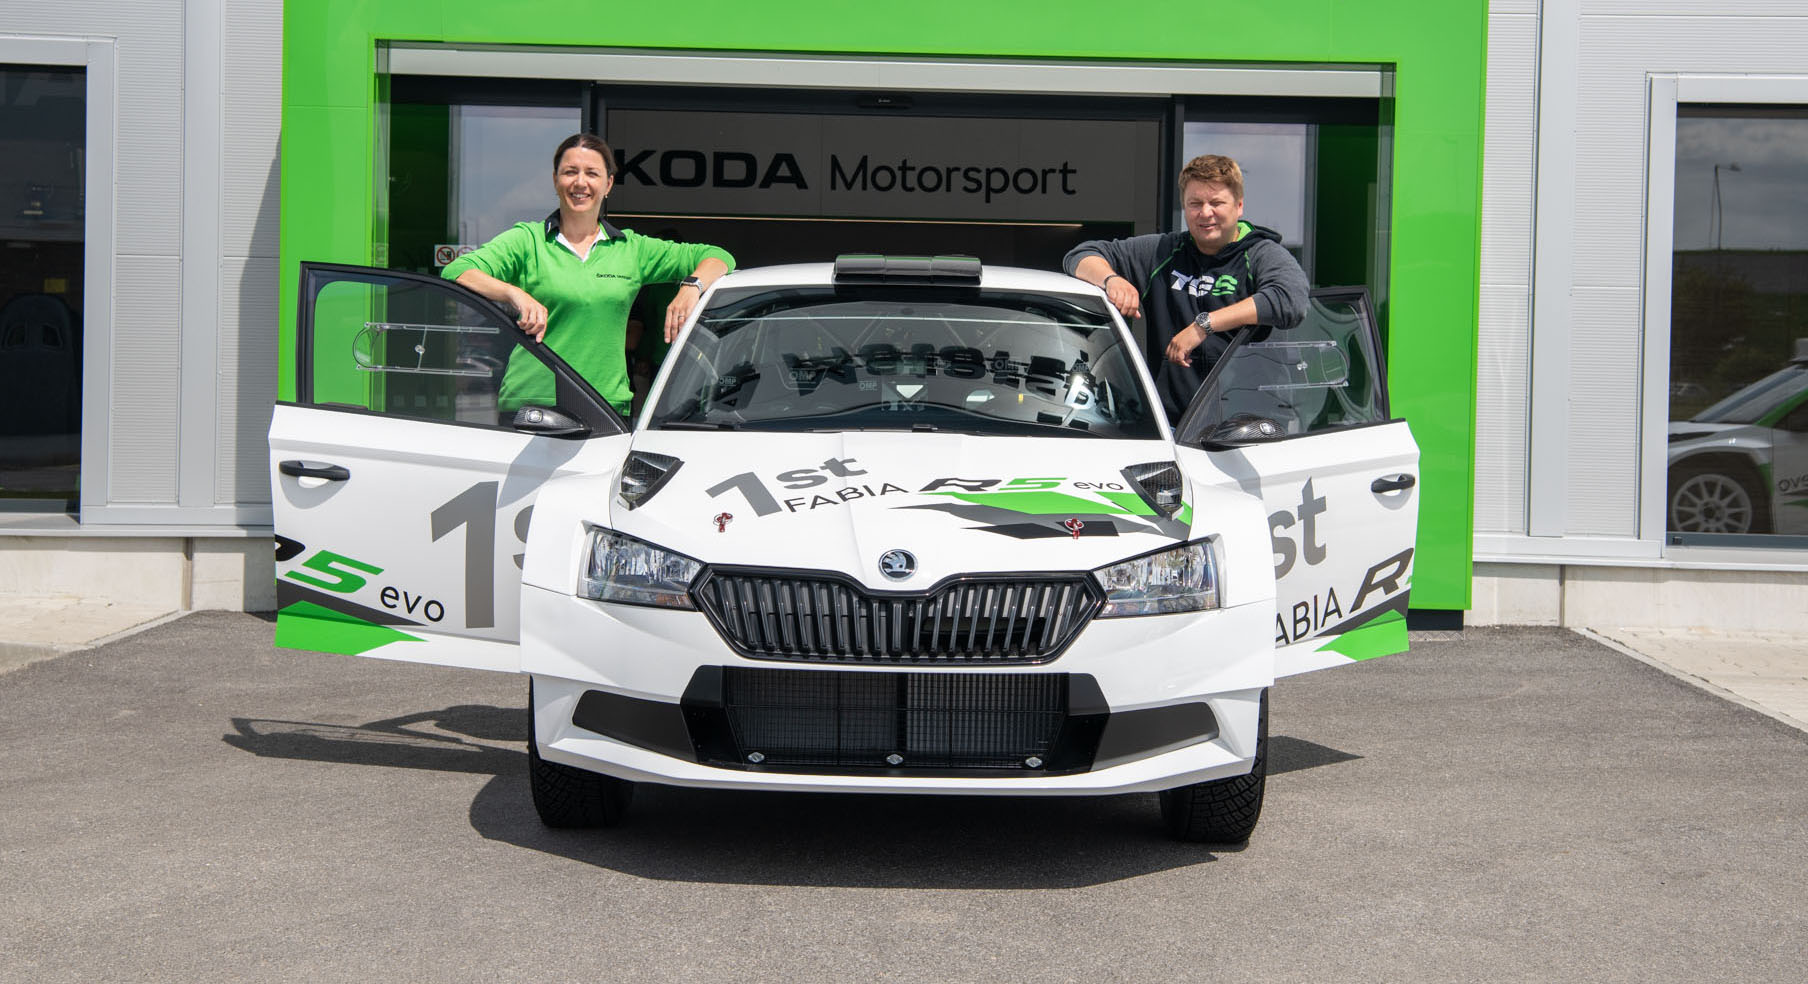 Toni Gardemeister took over the first FABIA R5 evo customer car